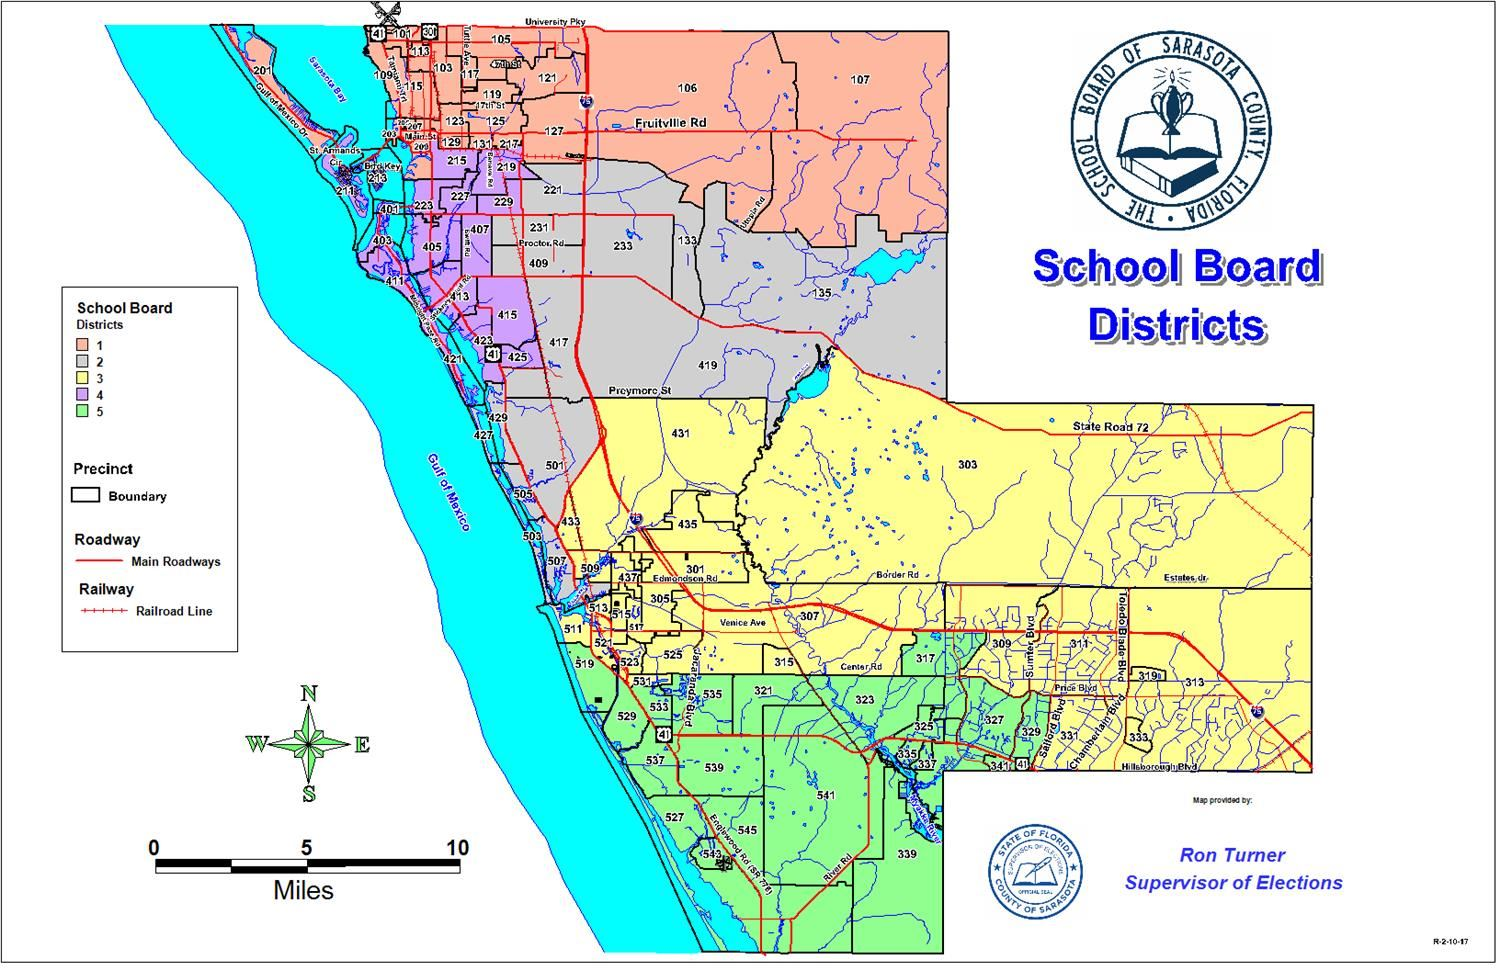 School Board Districts